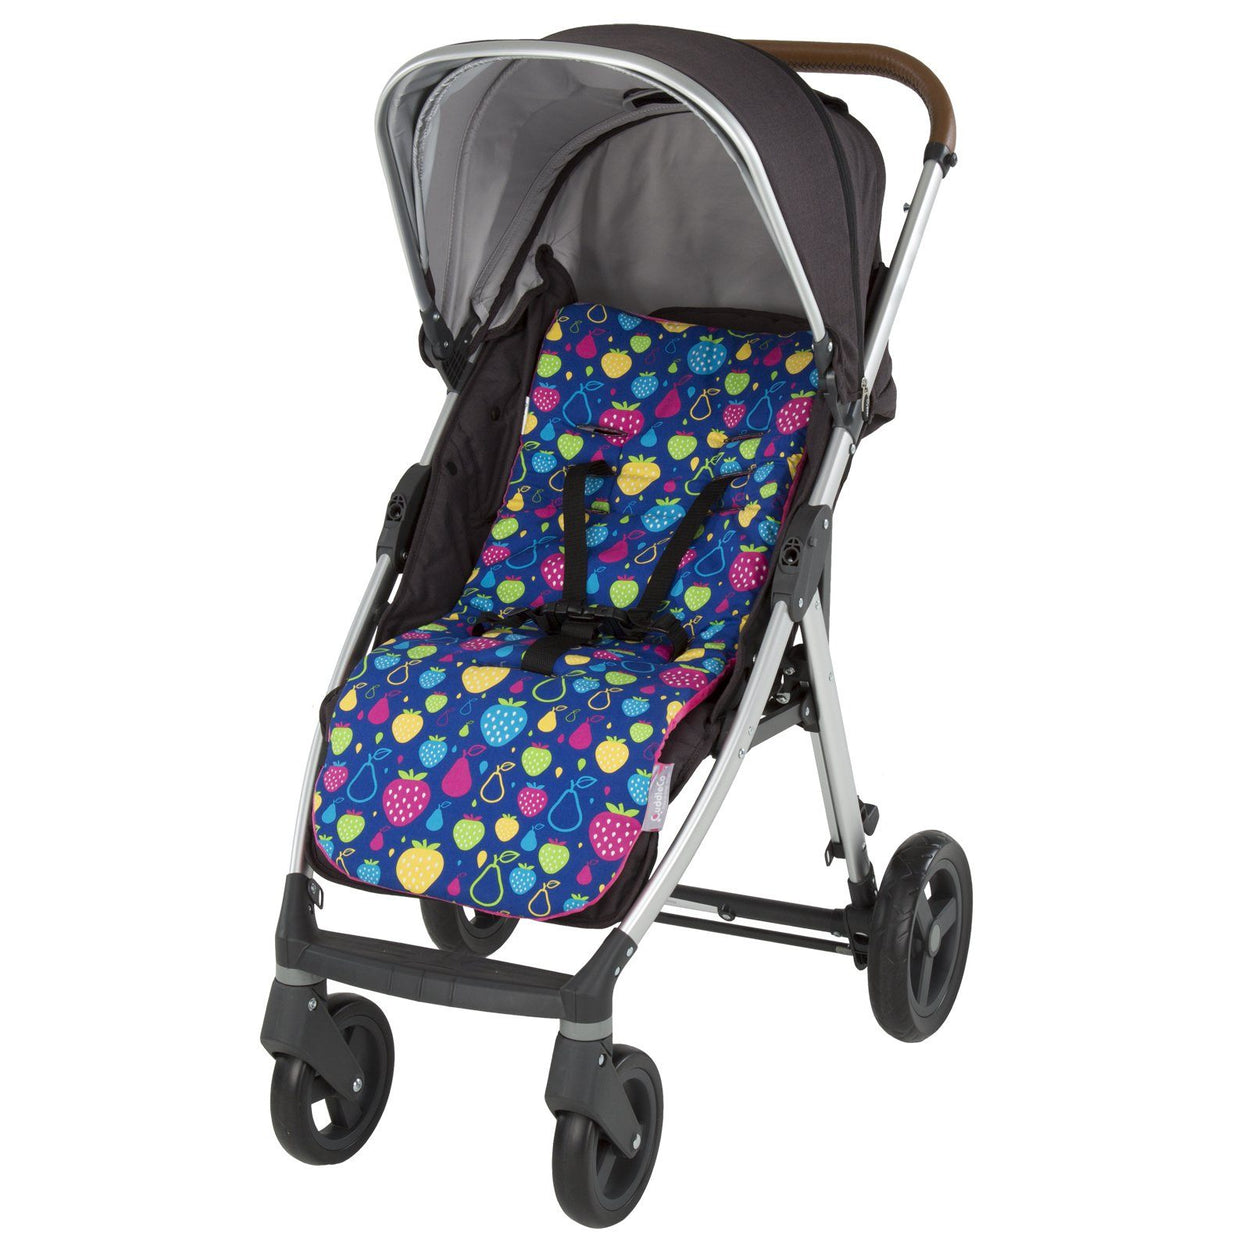 comfi cush memory foam stroller cushion fruity tutti